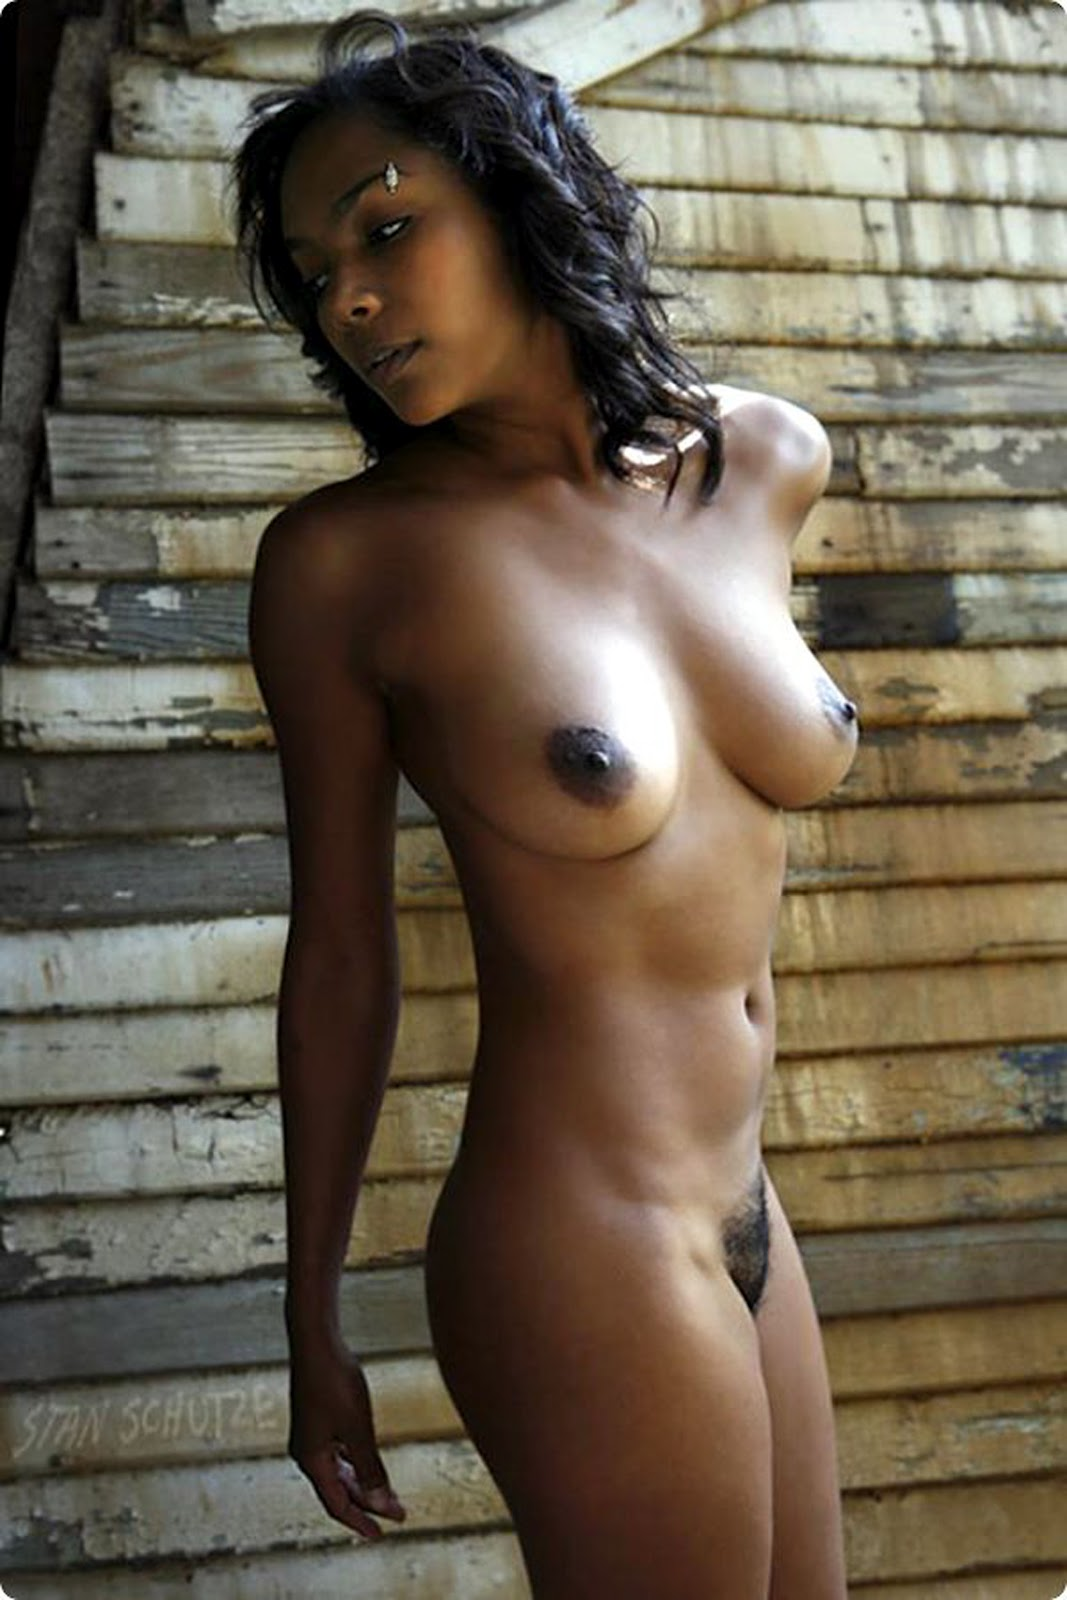 Especial. Black sexy facebook girls naked think